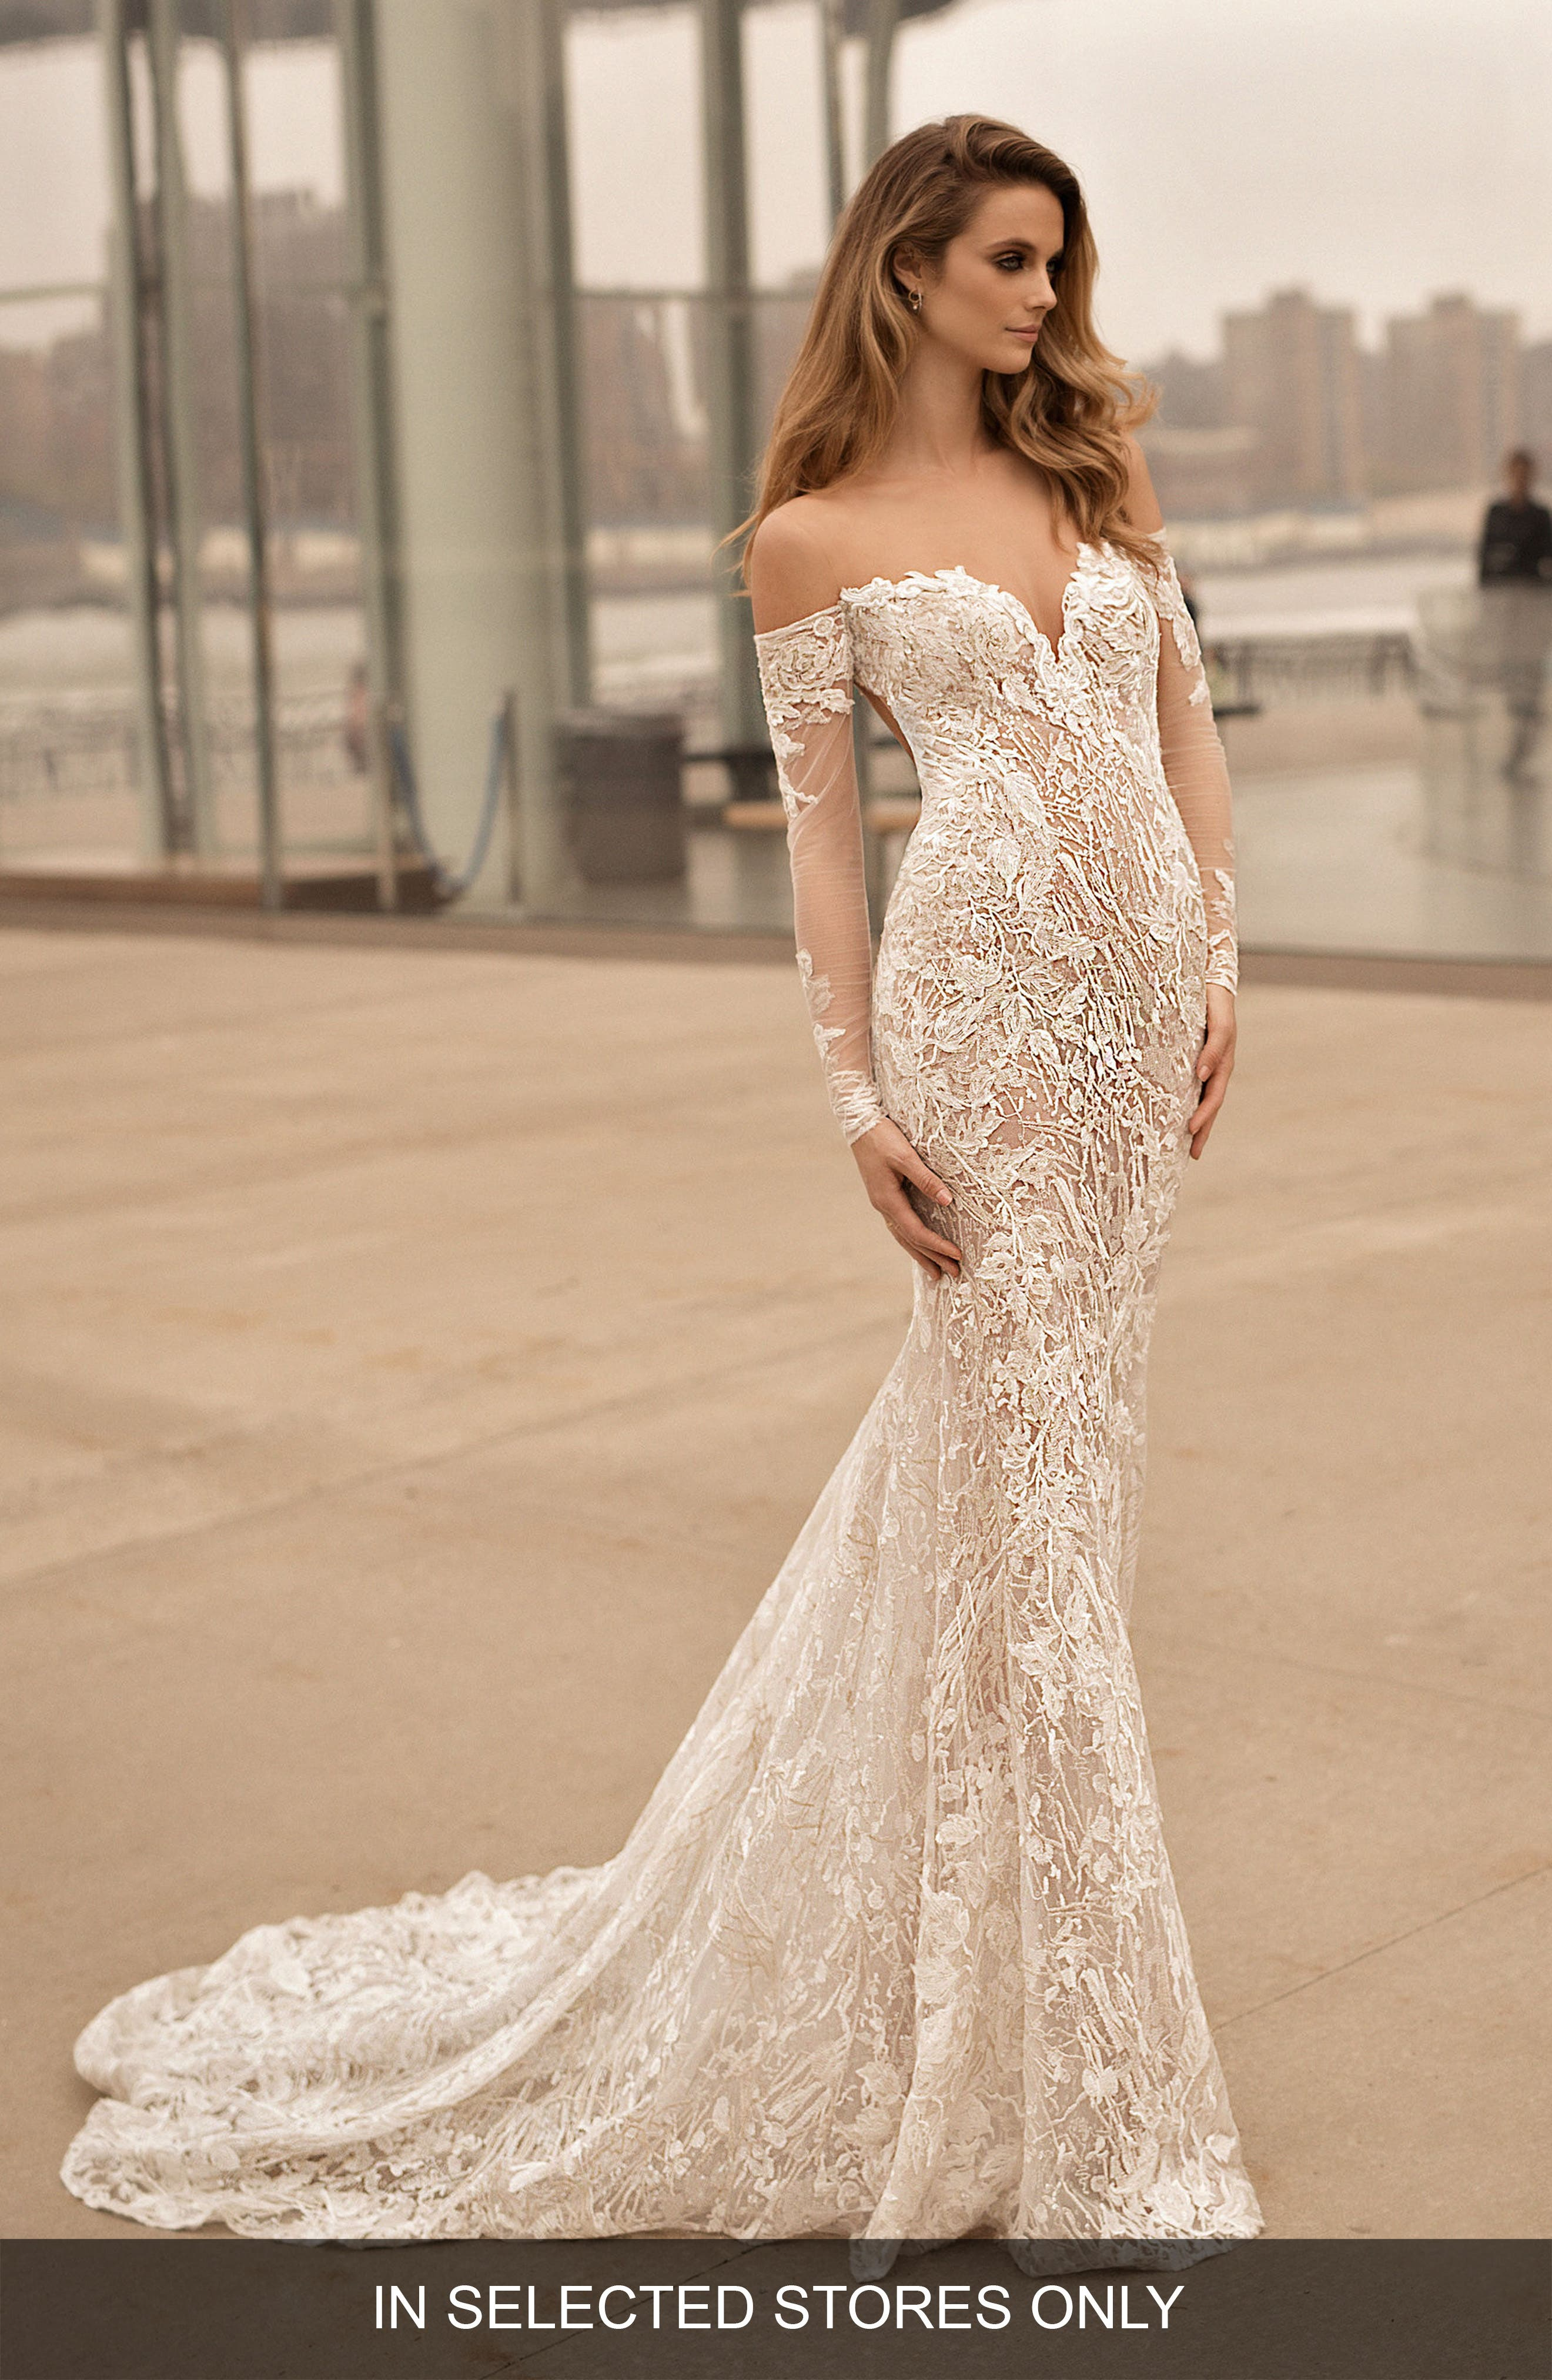 Fitted lace wedding dress long sleeve off the shoulder